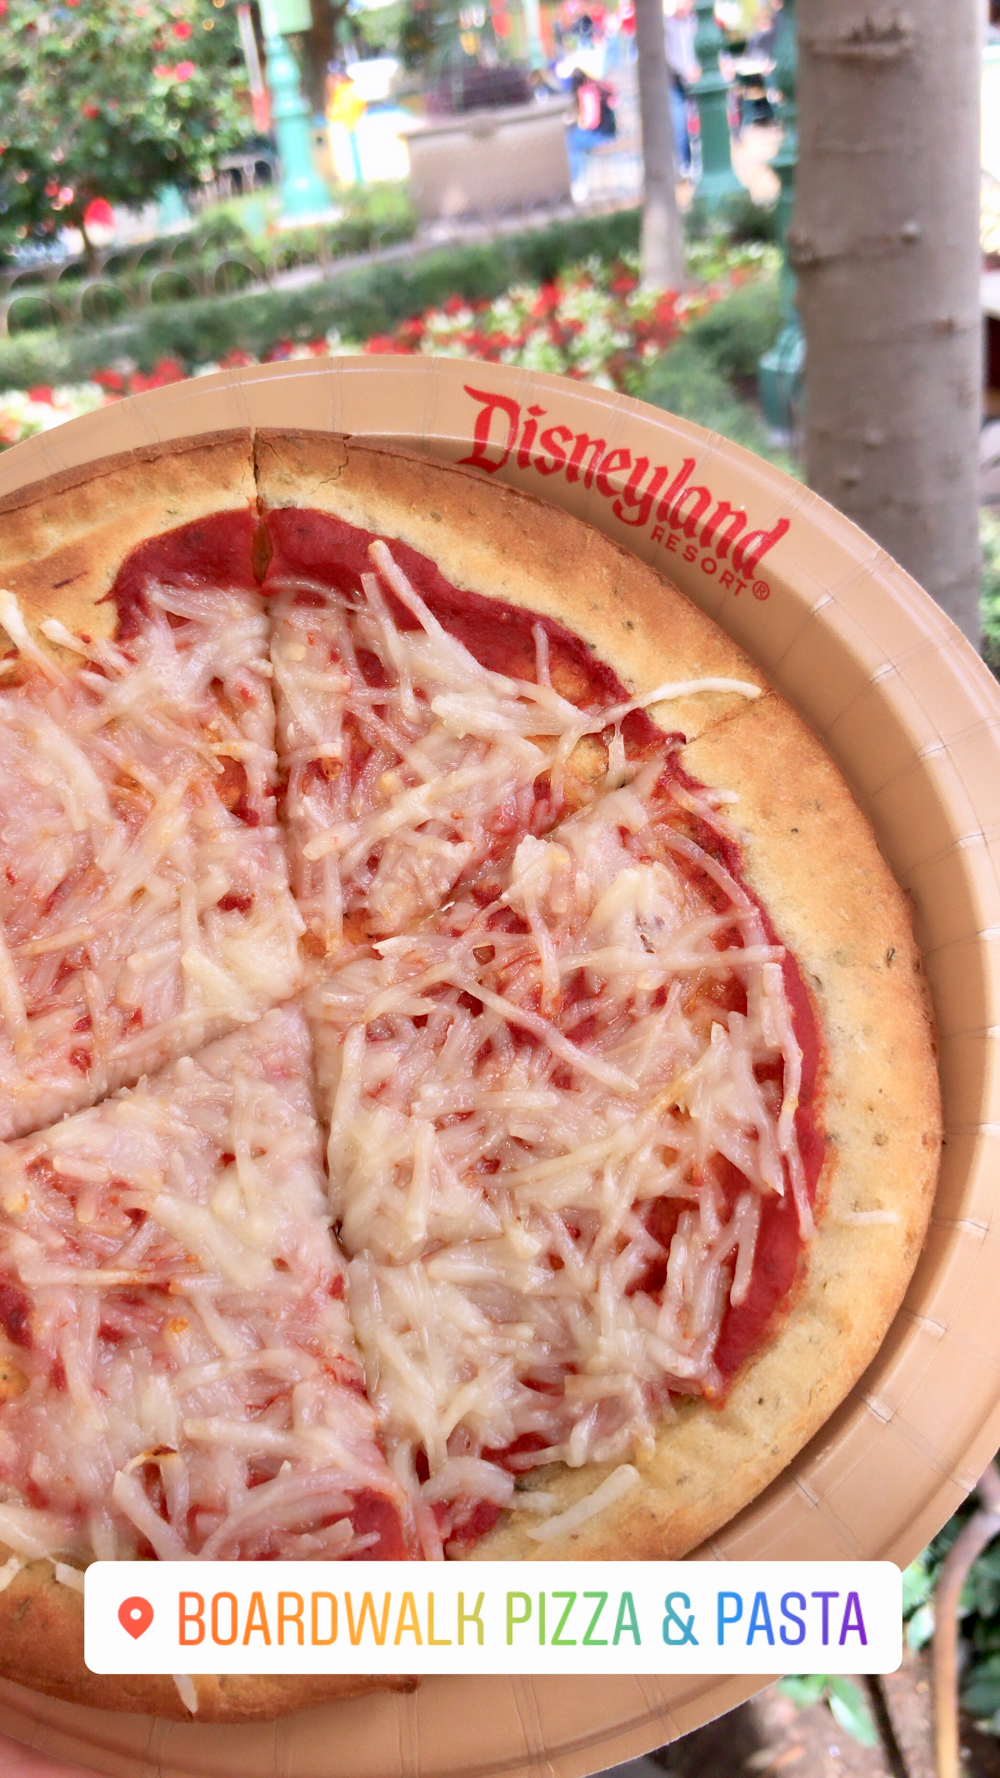 Vegan Pizza at California Adventure Disneyland | WorldofVegan.com #disneyland #california #vegan #worldofvegan